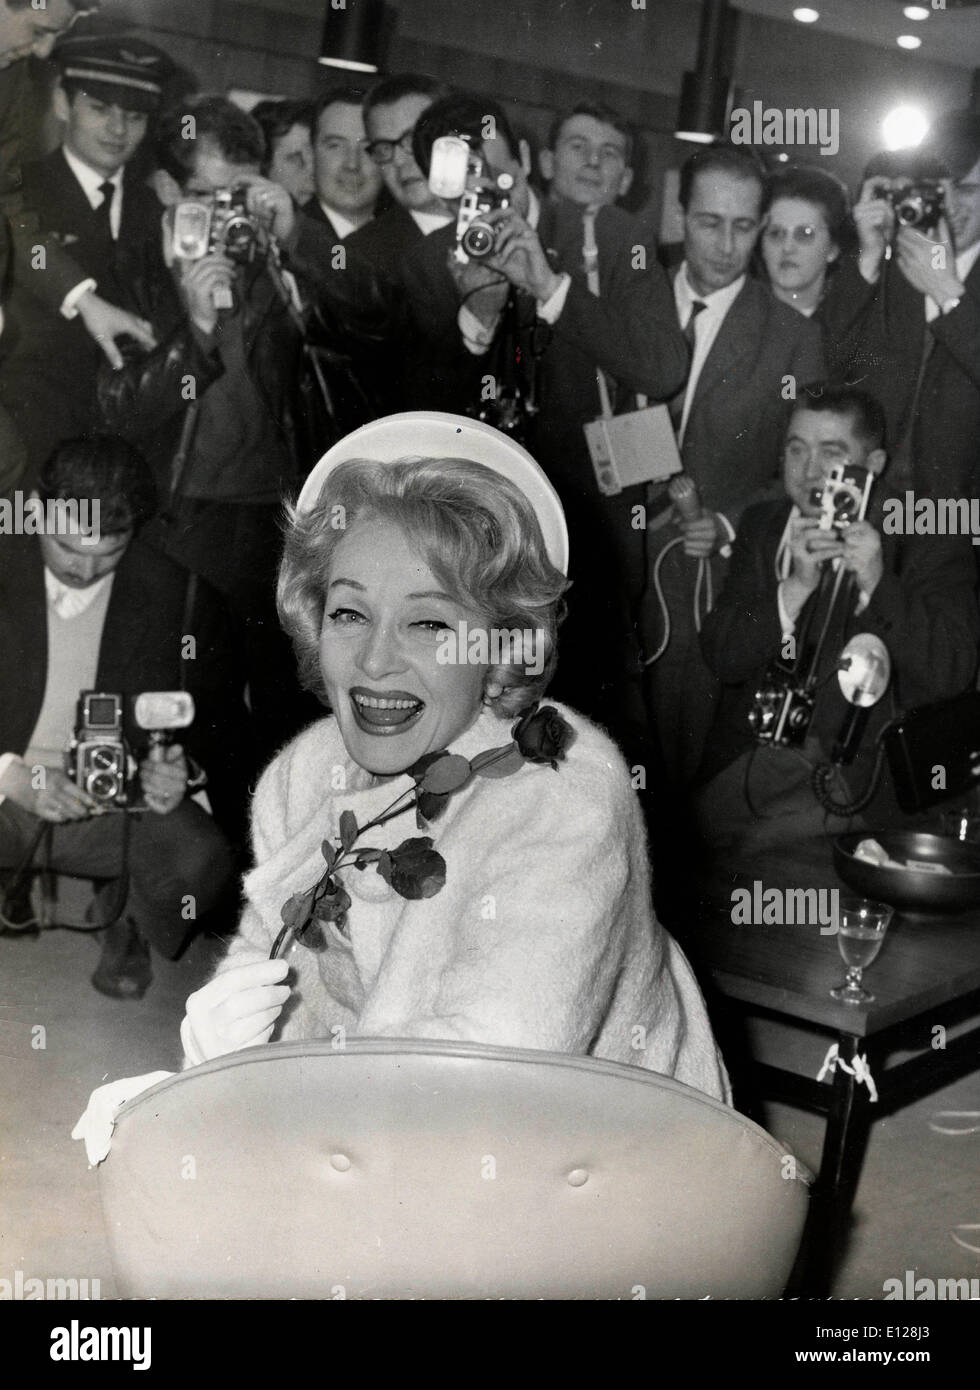 Apr 01, 2009 - London, England, United Kingdom - MARLENE DIETRICH (27 December 1901 Ð 6 May 1992) was a German - Stock Image